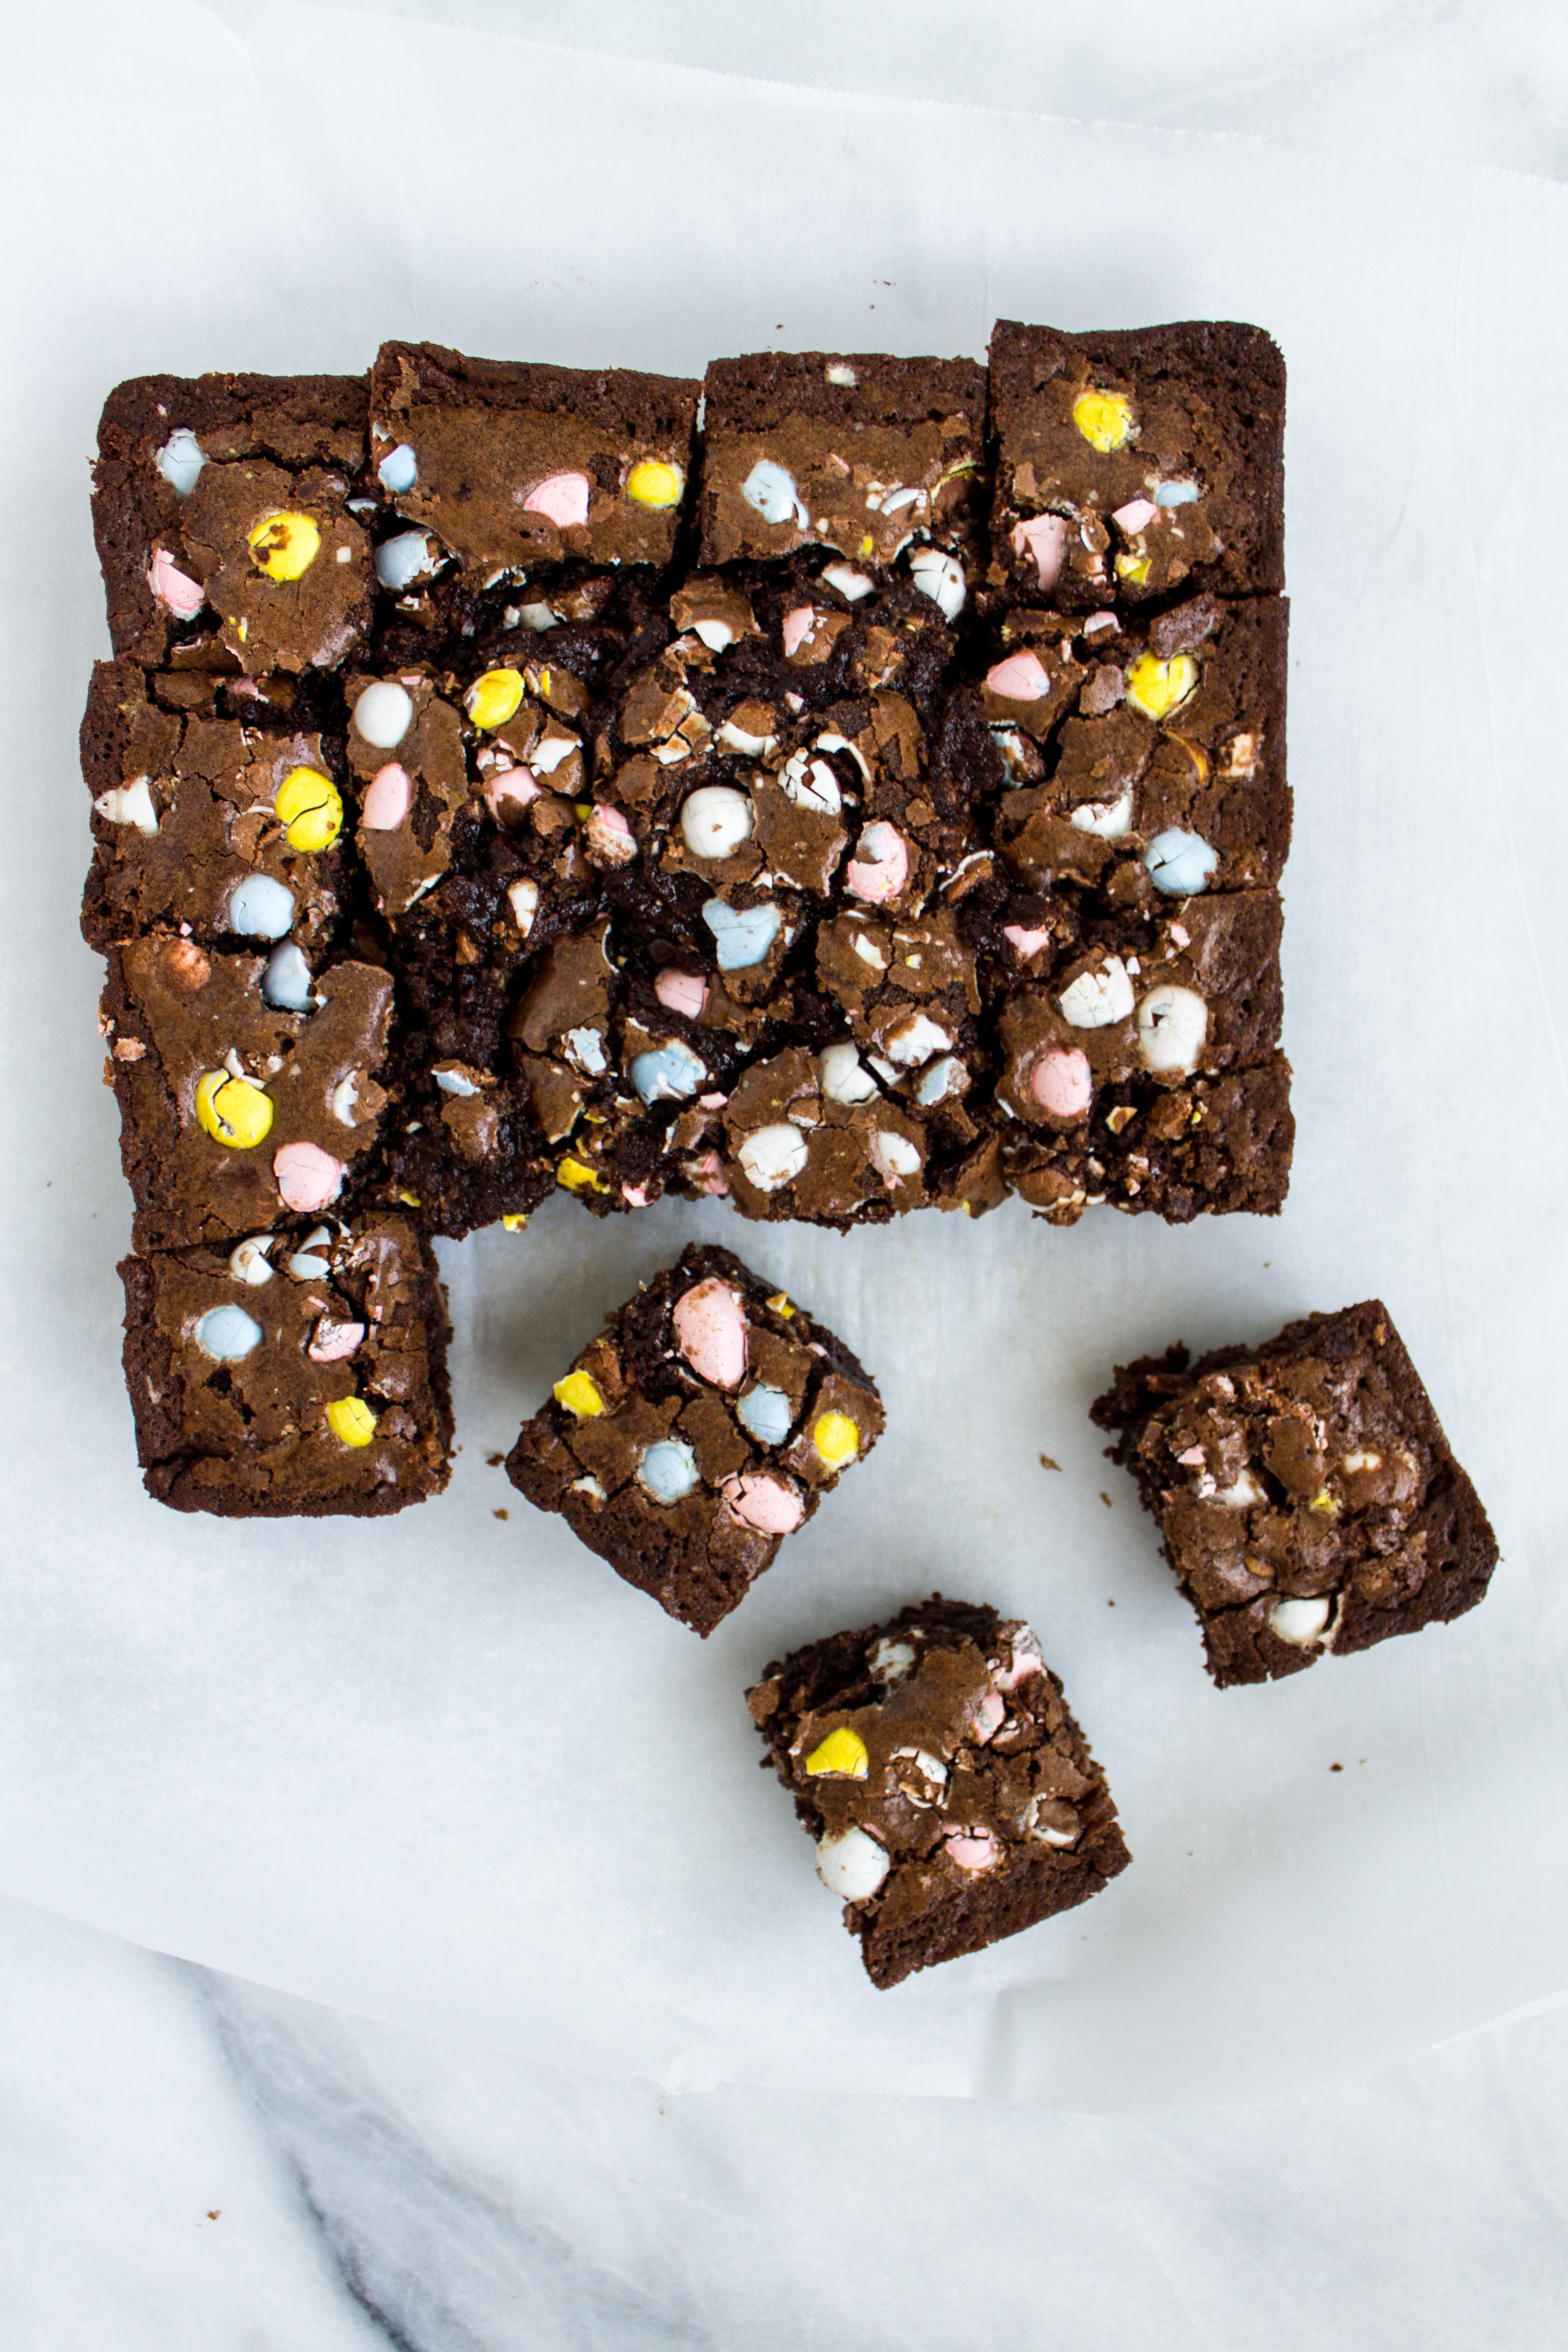 These fudgy, decadent Cadbury mini egg brownies are the perfect treat for Easter! They are easy to throw together, delicious, and good for snacking on even days later. | www.passthecookies.com